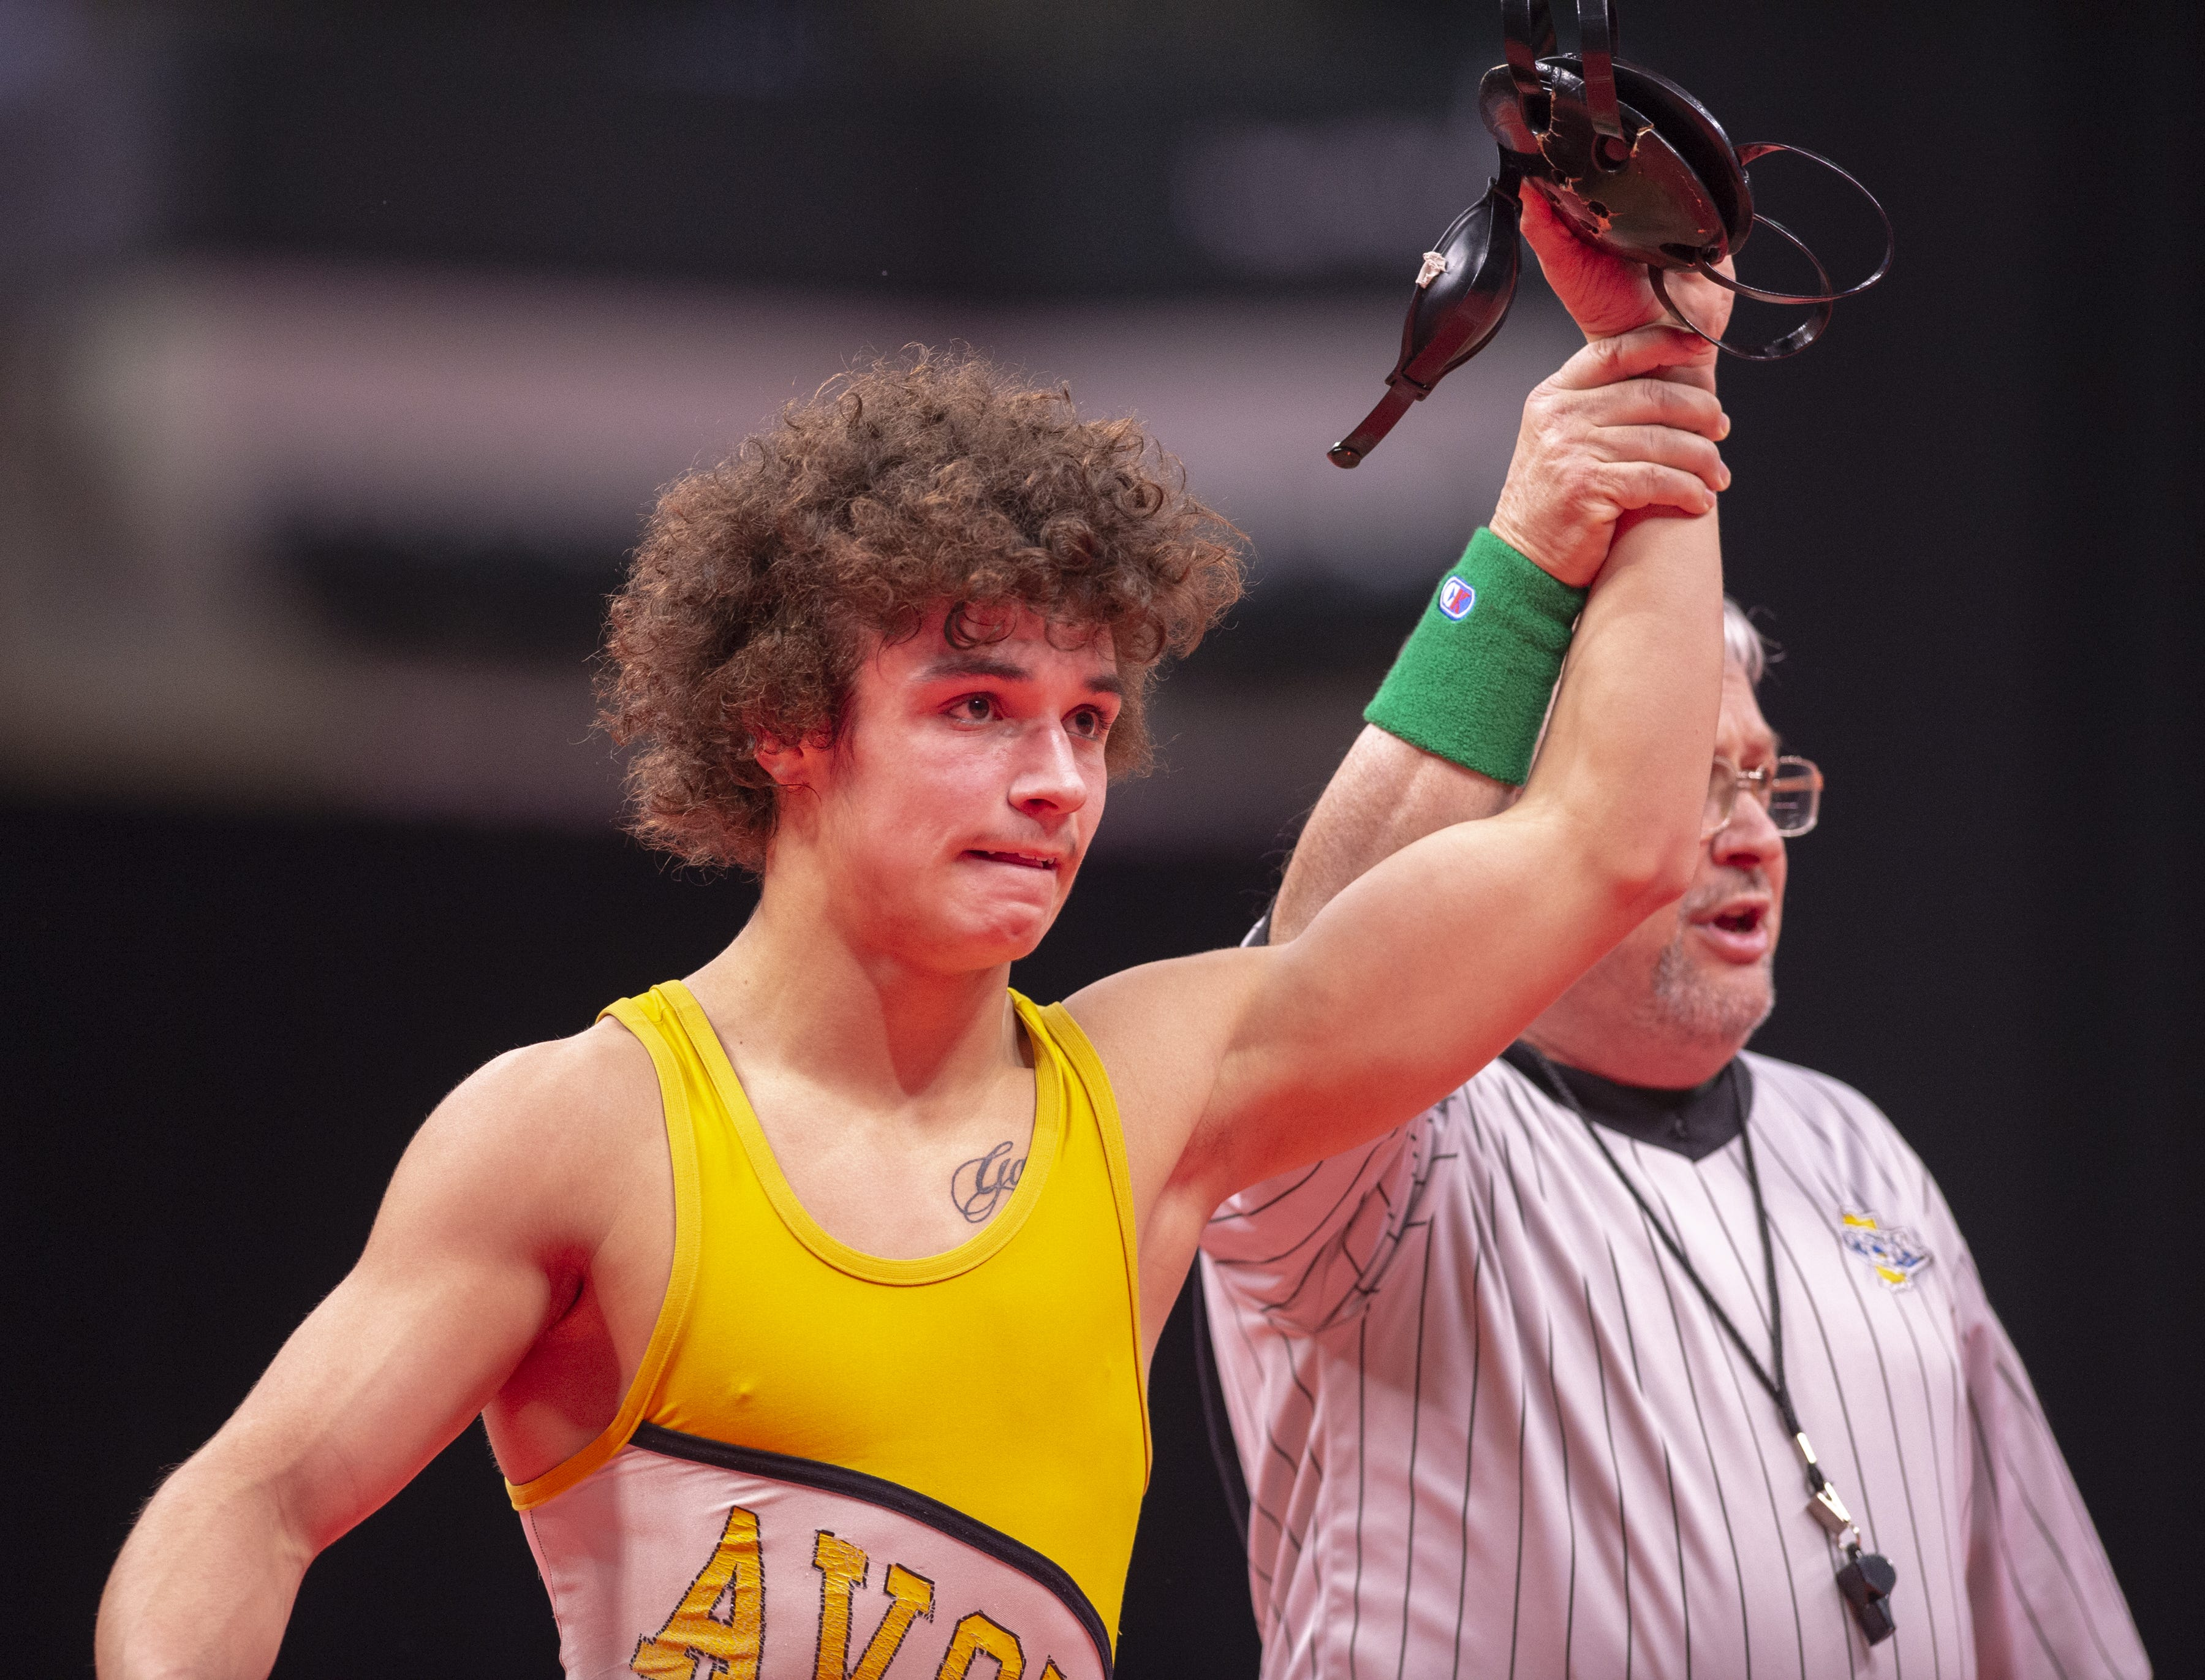 Avon High School wrestler Asa Garcia defeated Rensselaer Central High School wrestler Elijah Hickman in the 132-pound weight class during the first day of competition in the 81st Annual IHSAA Wrestling State Finals at Bankers Life Fieldhouse in Indianapolis, Friday, Feb. 15, 2019.